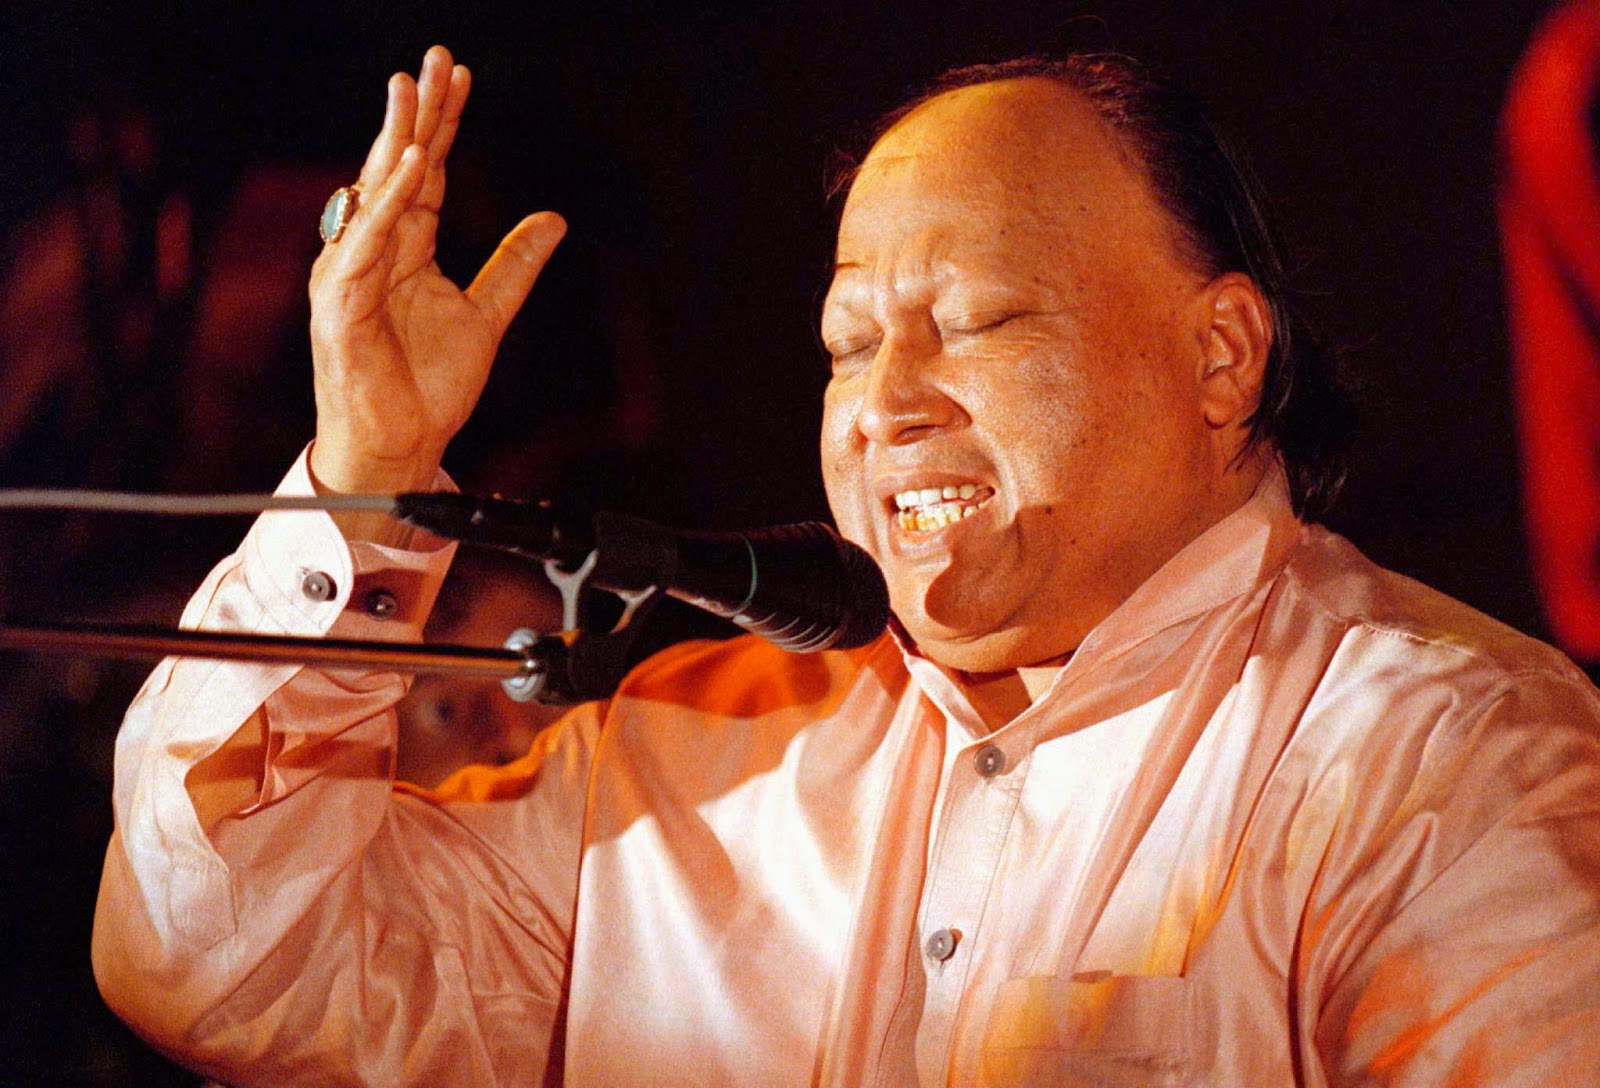 NUSRAT FATEH ALI KHAN MP3 QAWWALI COLLECTION